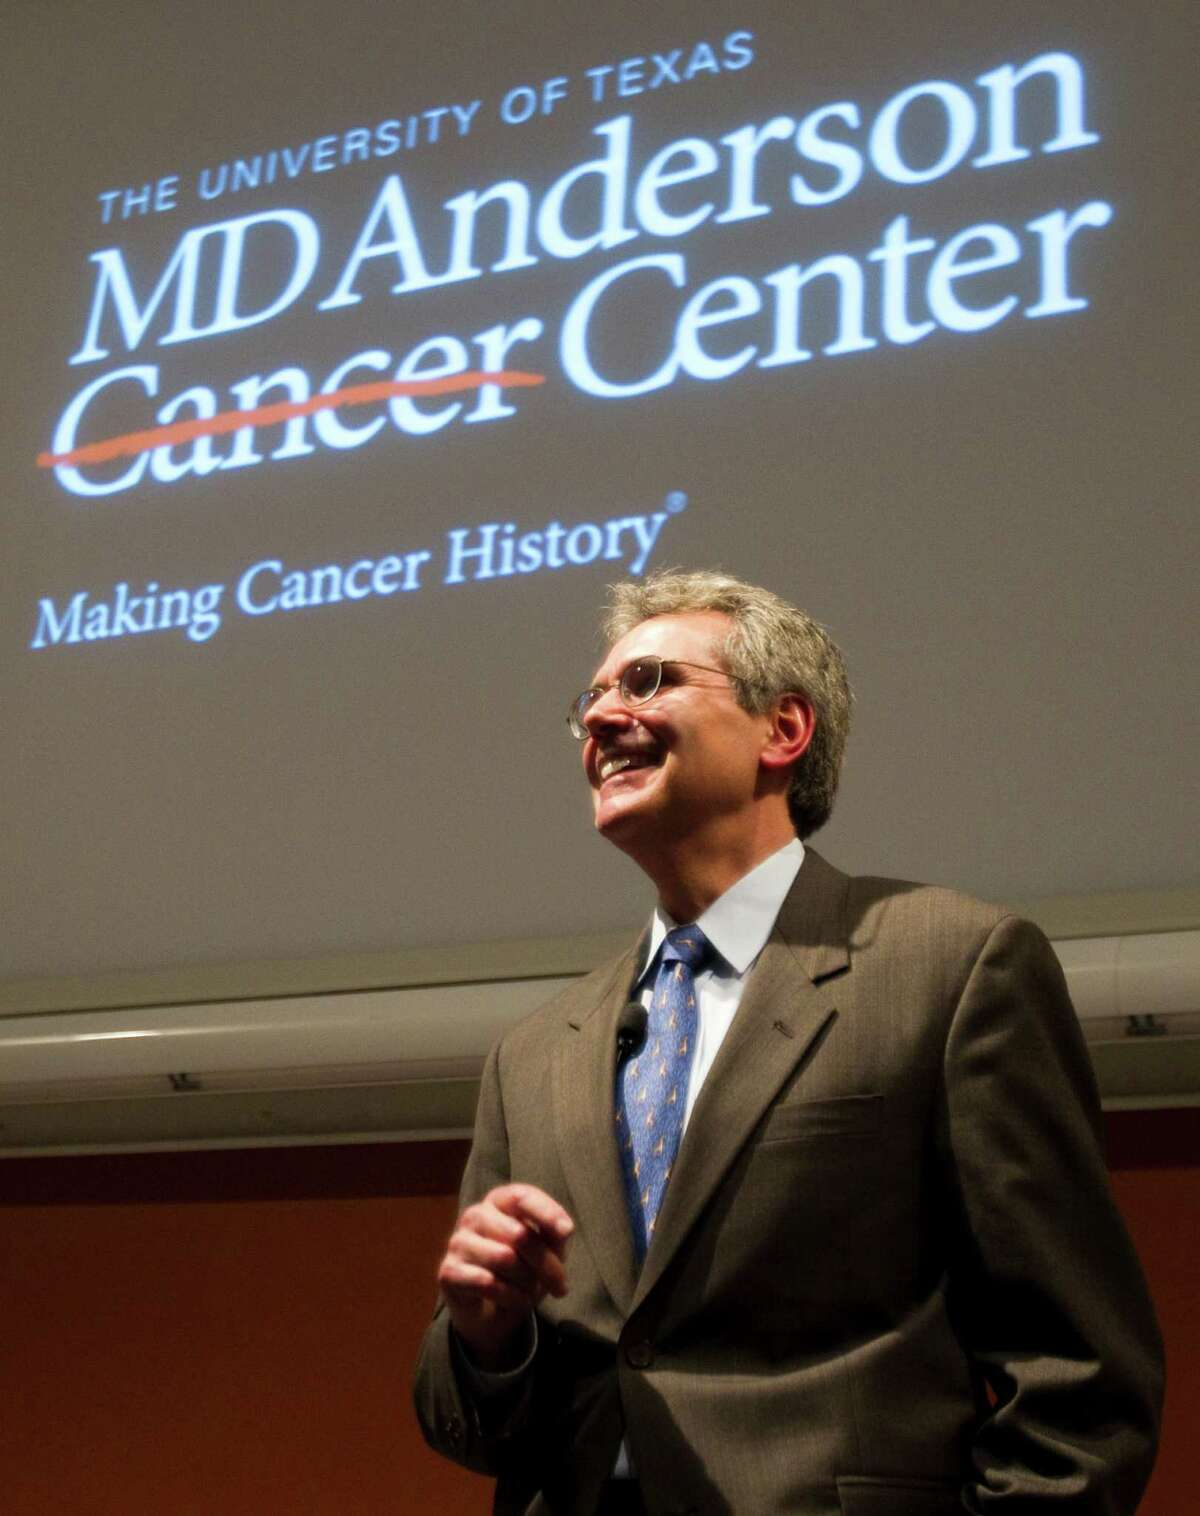 Dr. Ronald DePinho, who has been in Houston since 2011, is the fourth president of M.D. Anderson Cancer Center. ( Brett Coomer / Houston Chronicle )